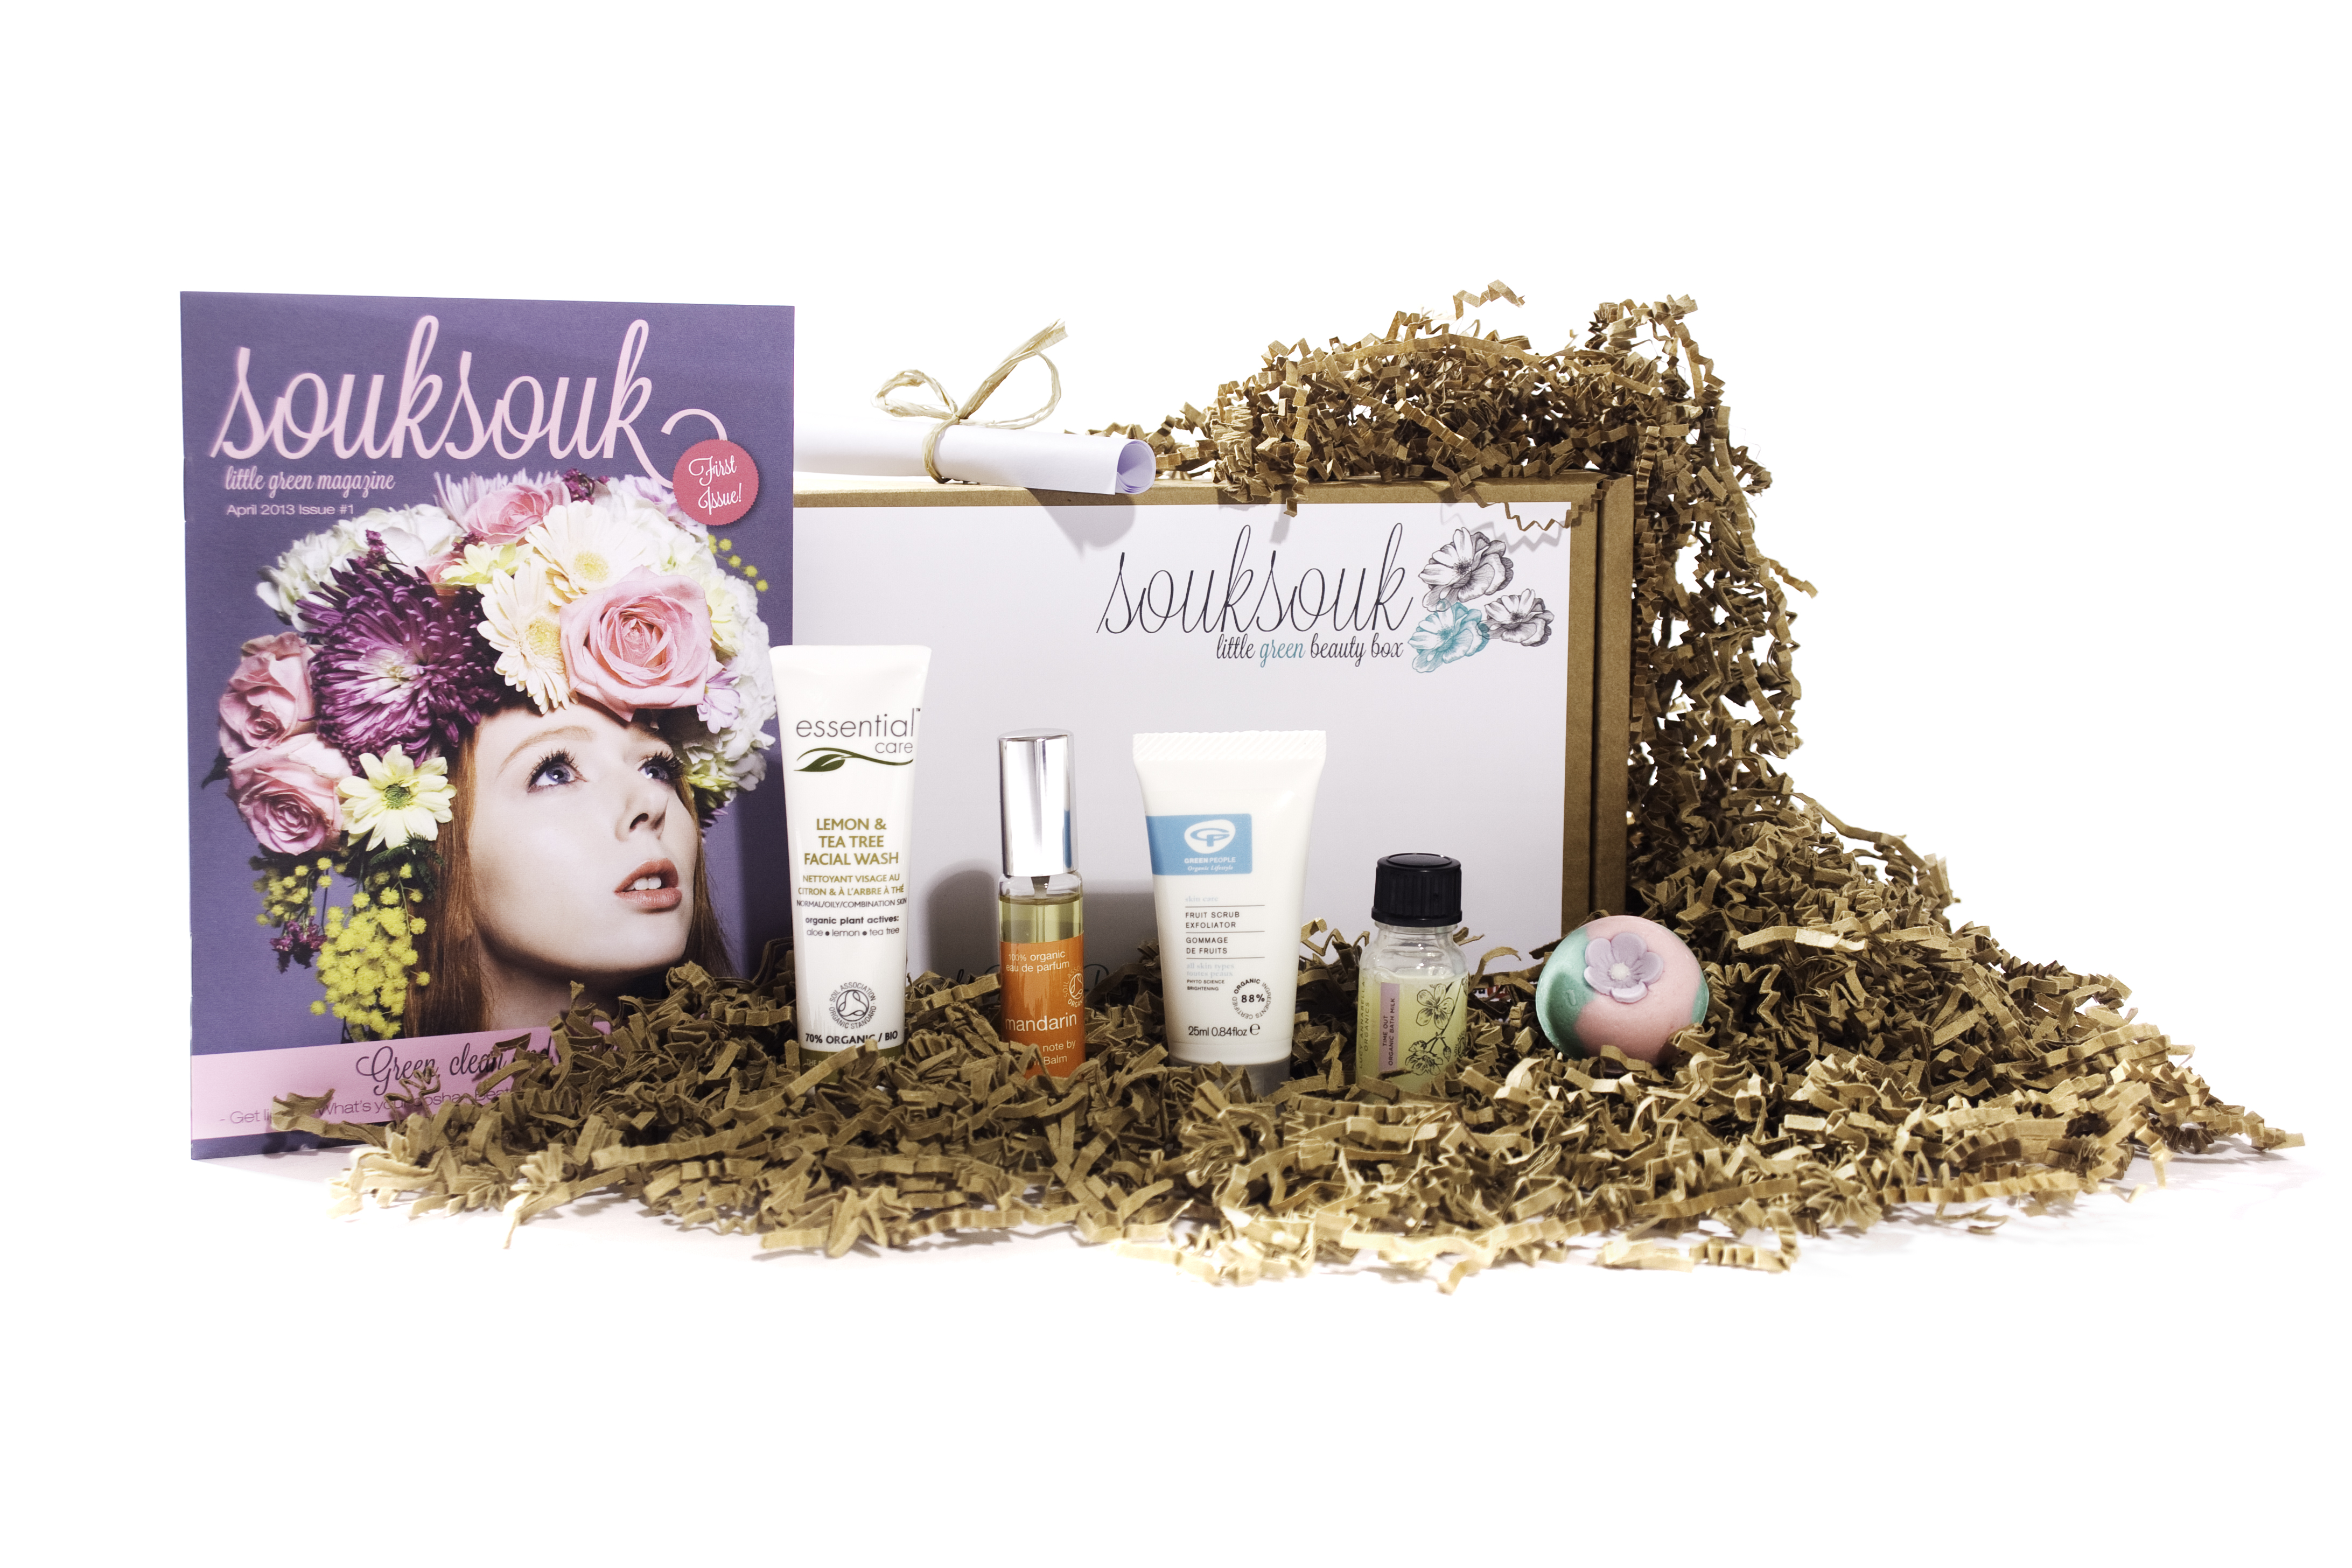 SoukSouk example beauty box Natural Beauty Spot   SoukSouk, Little Green Beauty Box Review